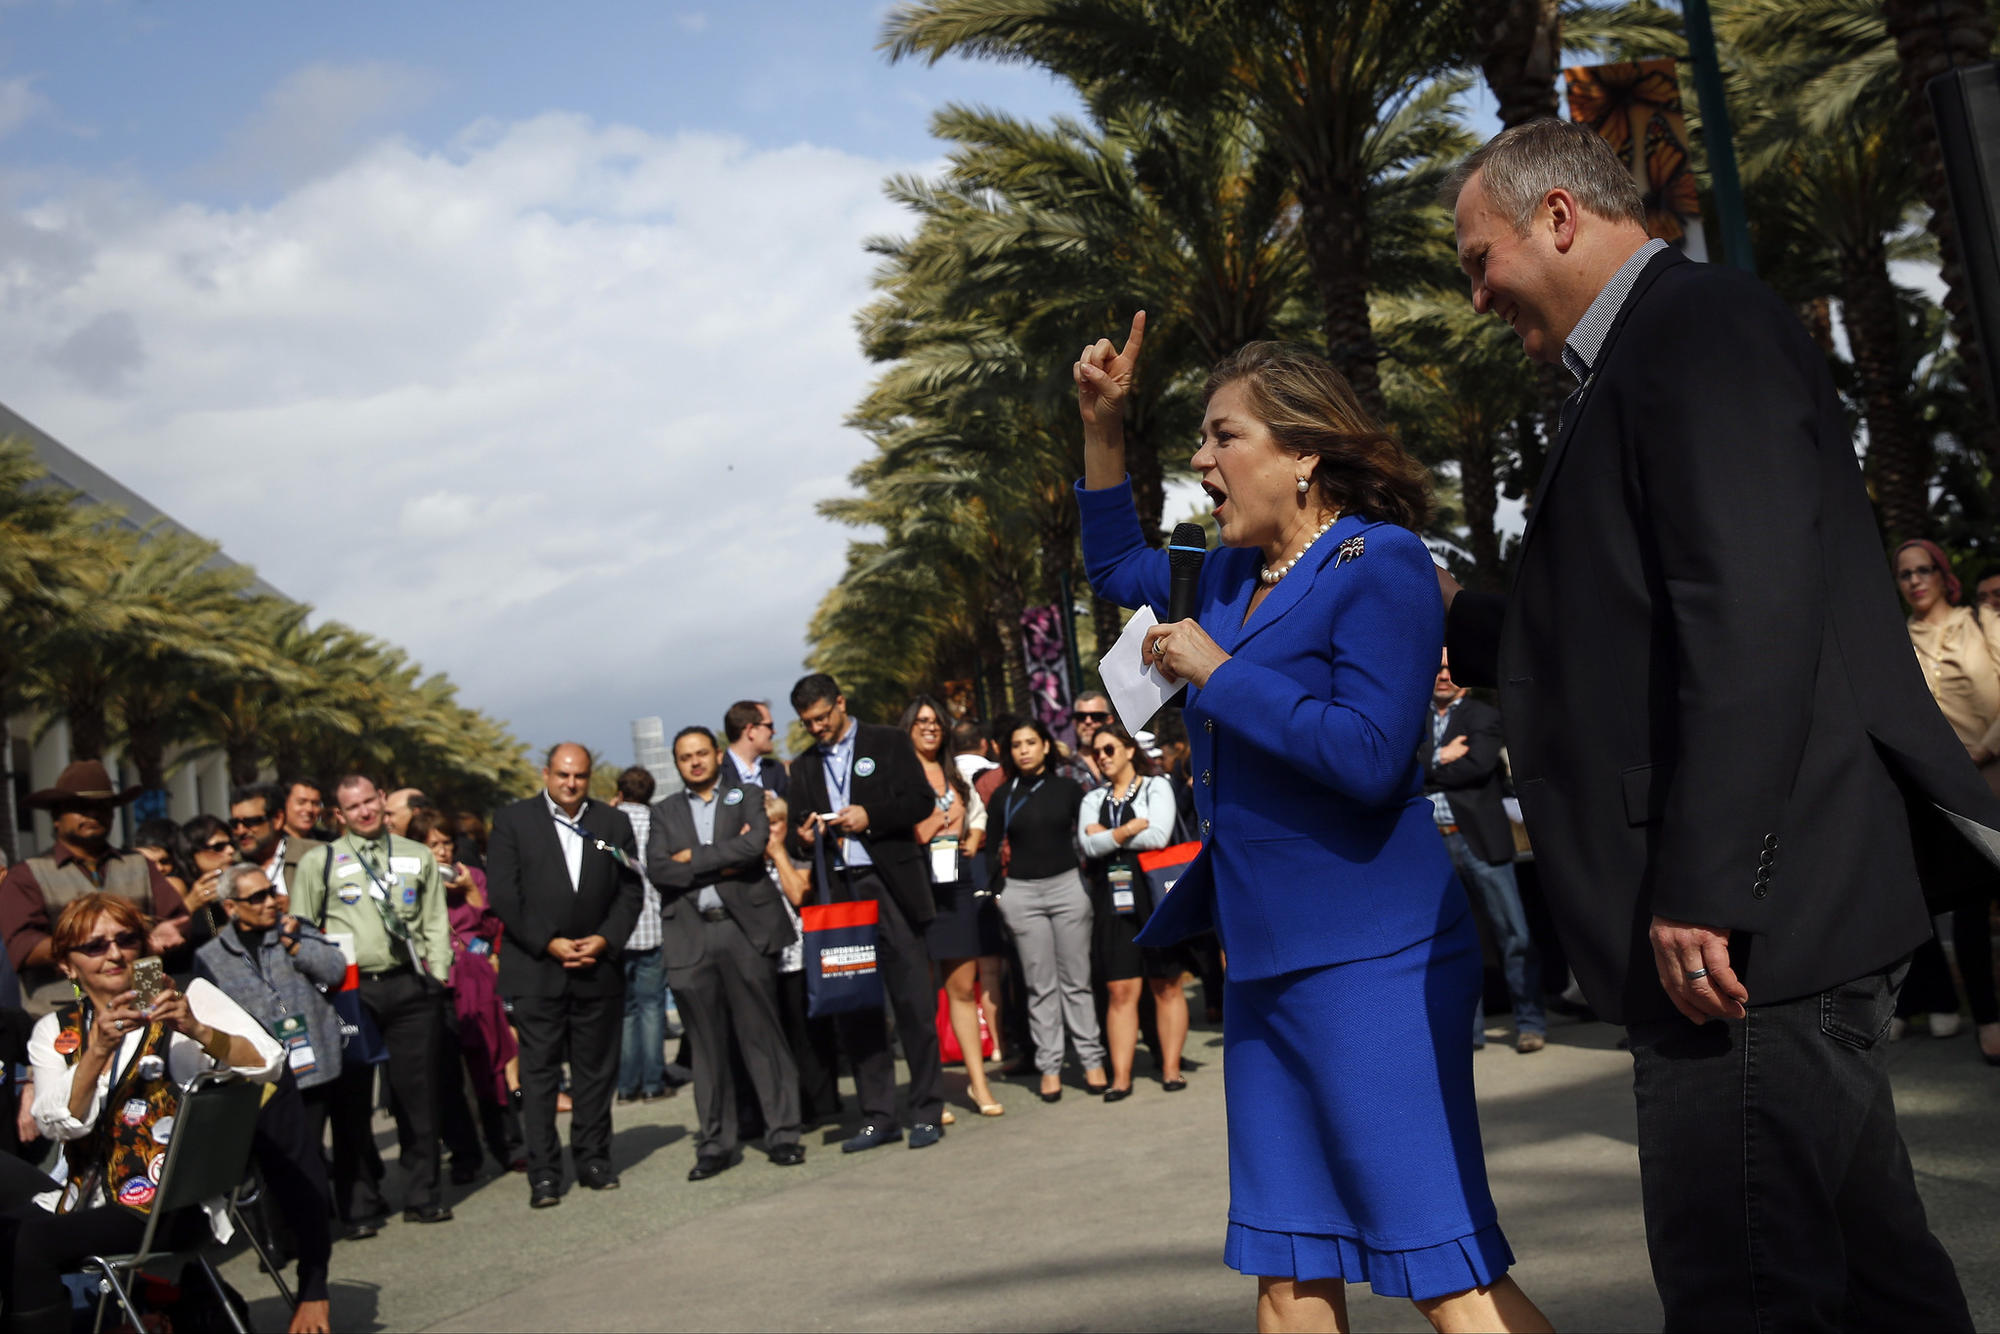 Rep. Loretta Sanchez speaks as her husband, Jack Einwechter, looks on as she campaigns for the U.S. Senate during the California Democratic Party 2015 State Convention in Anaheim.